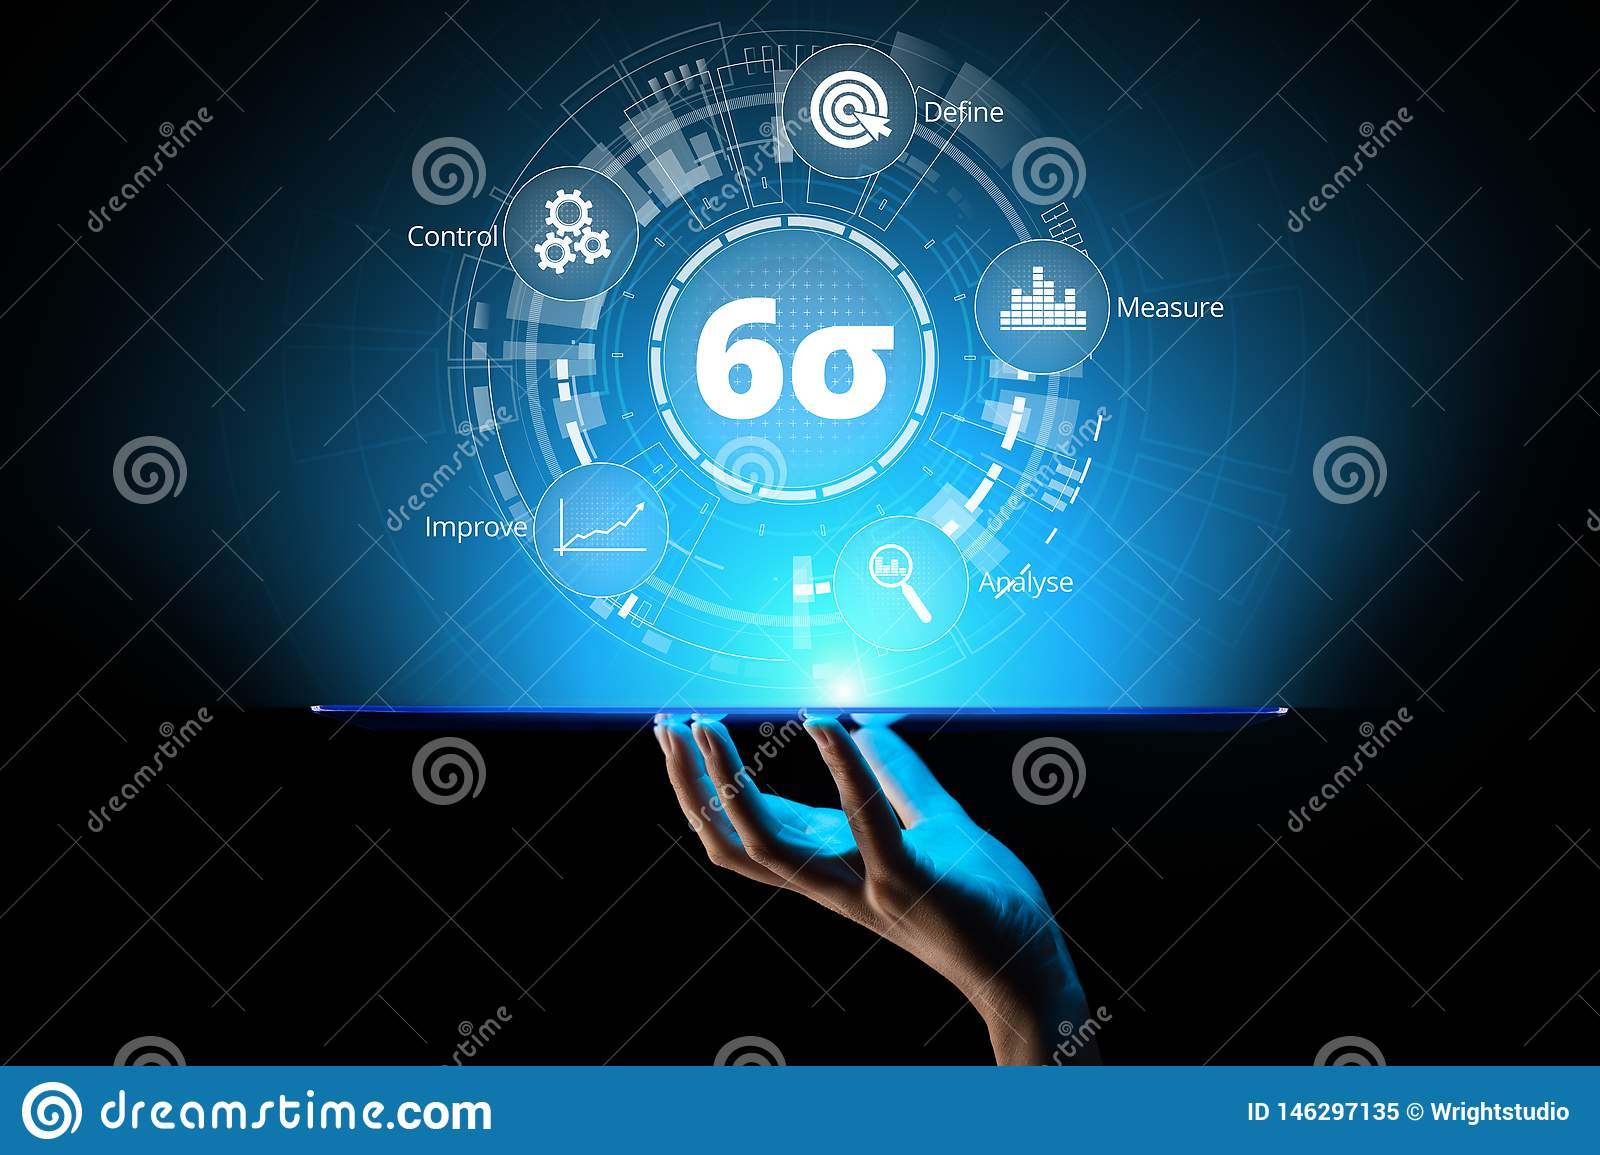 Six sigma DMAIC Industrial innovation technology quality control business concept.